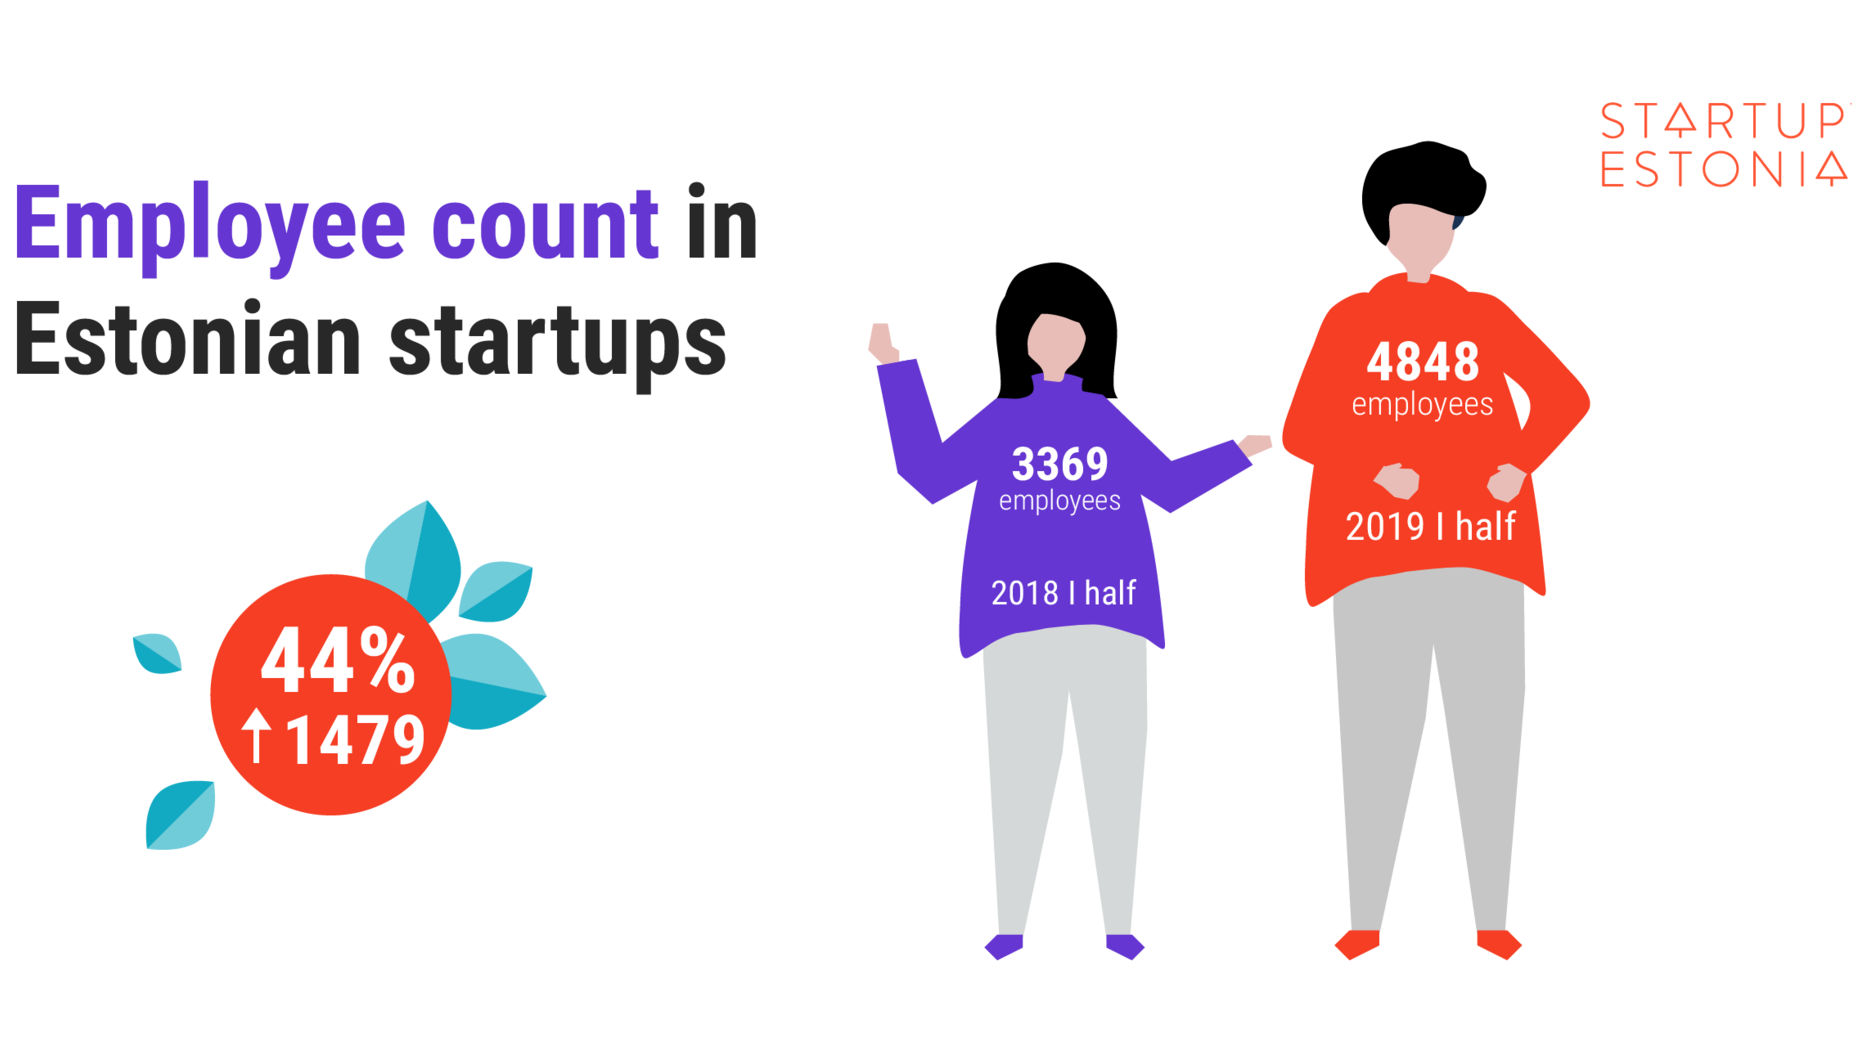 The employee count in Estonian startups is on the rise